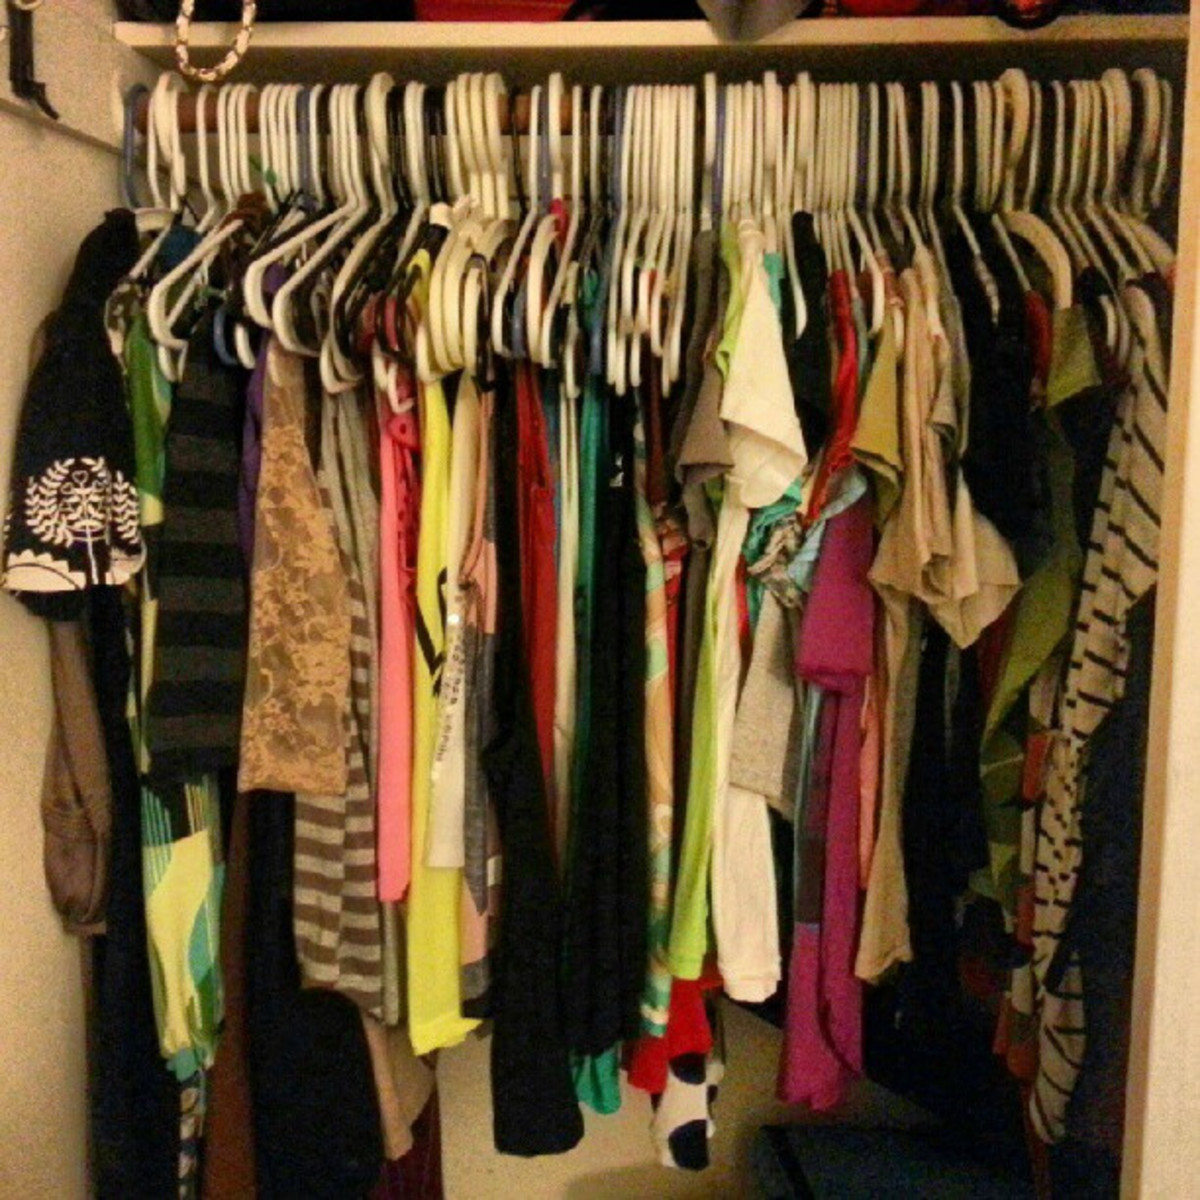 Every day take a look in the closet and get rid of a clothing item you never wear.